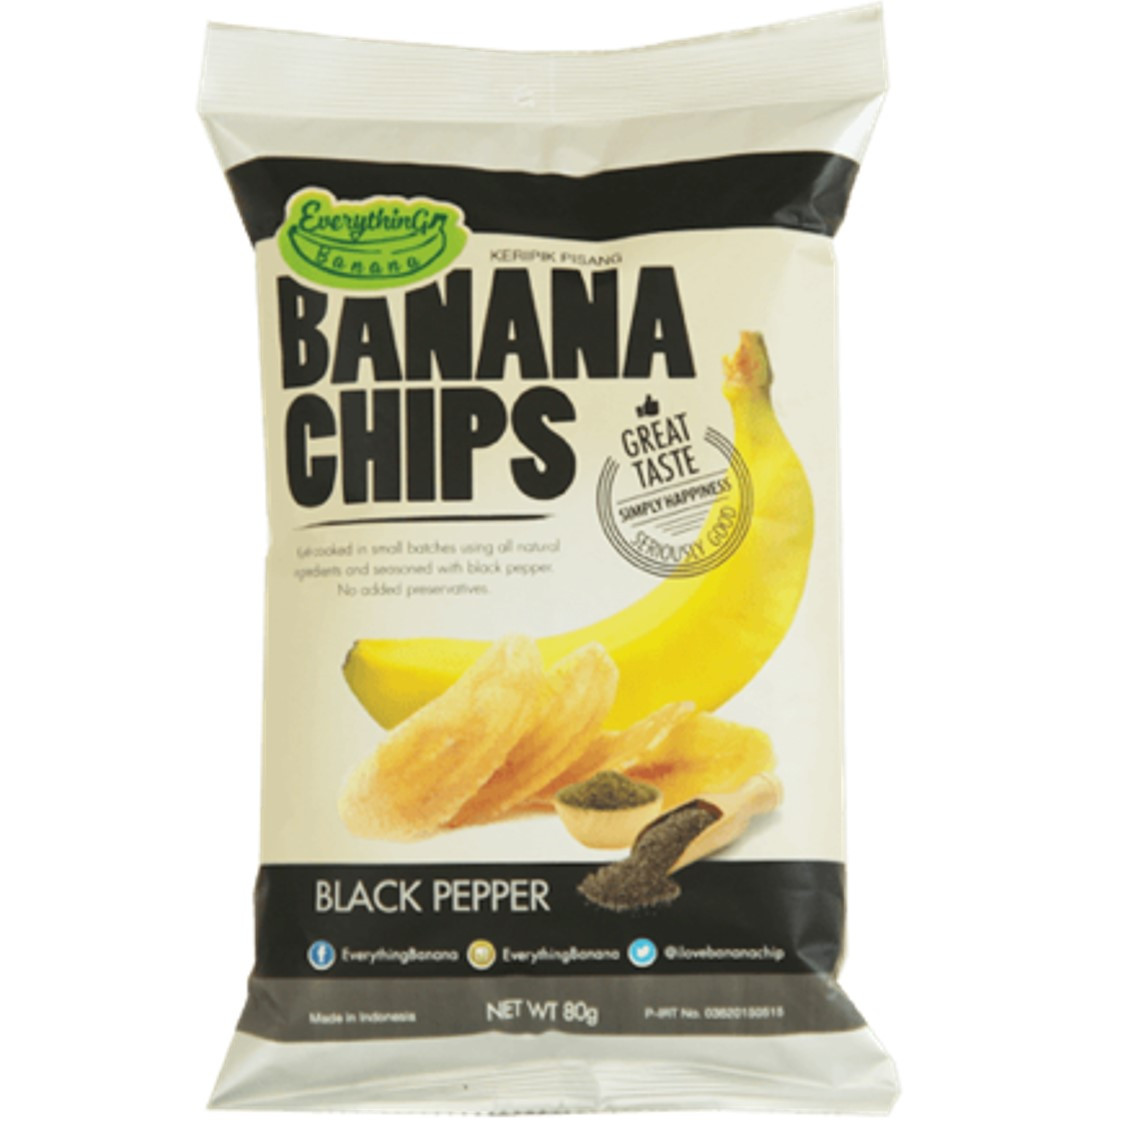 Everything Banana Chips - Black Pepper, 80g